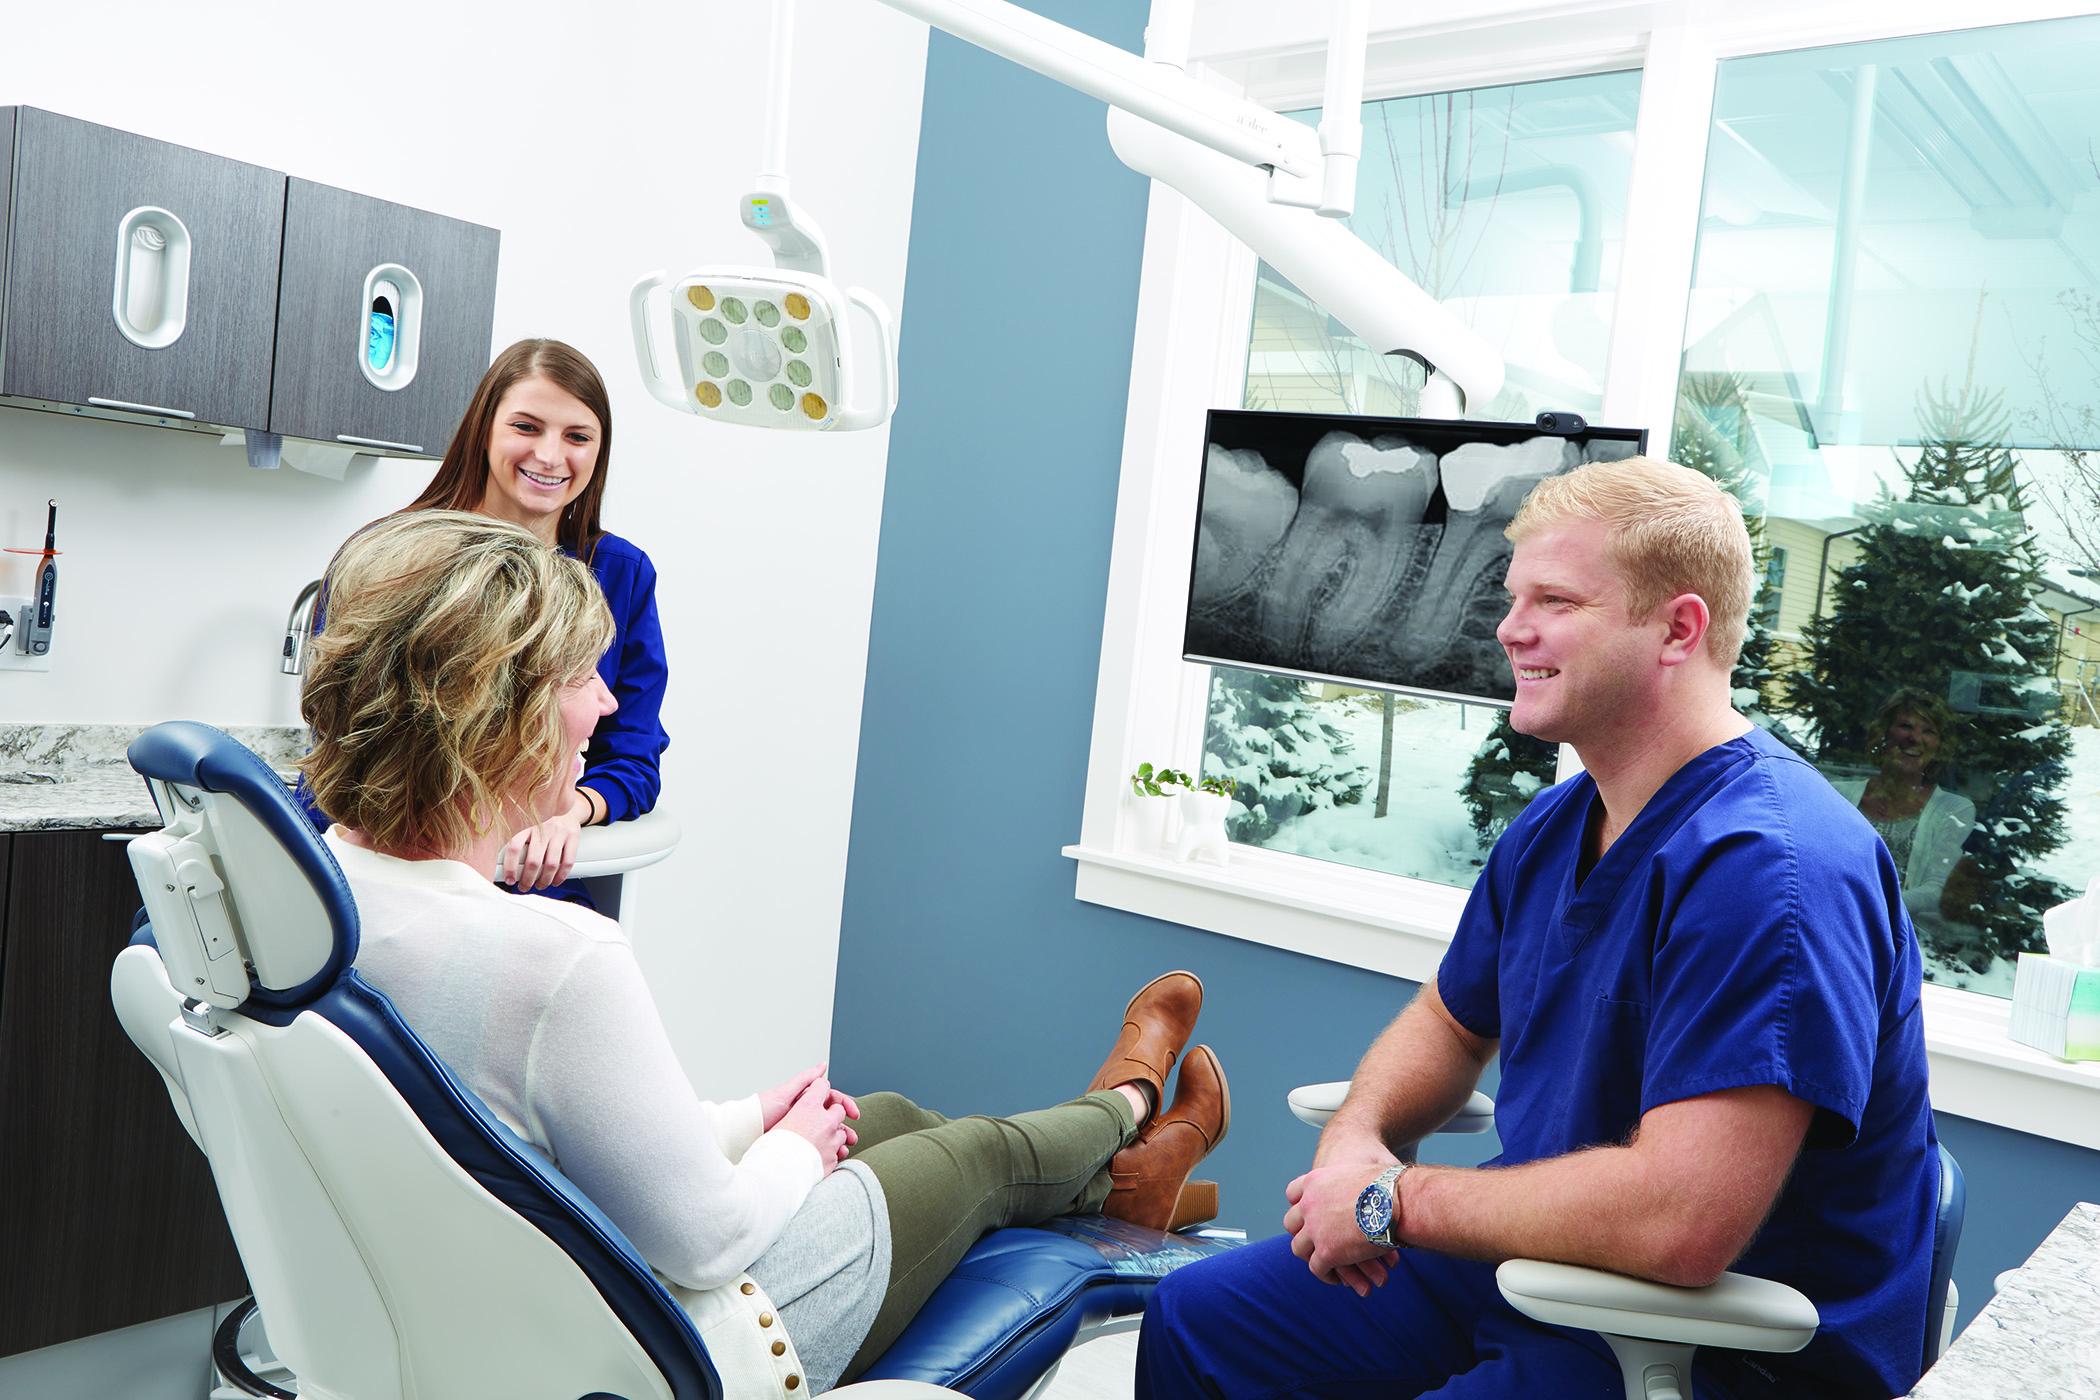 Michigan Endodontist Turns Sandbox into Sophisticated and Successful Office